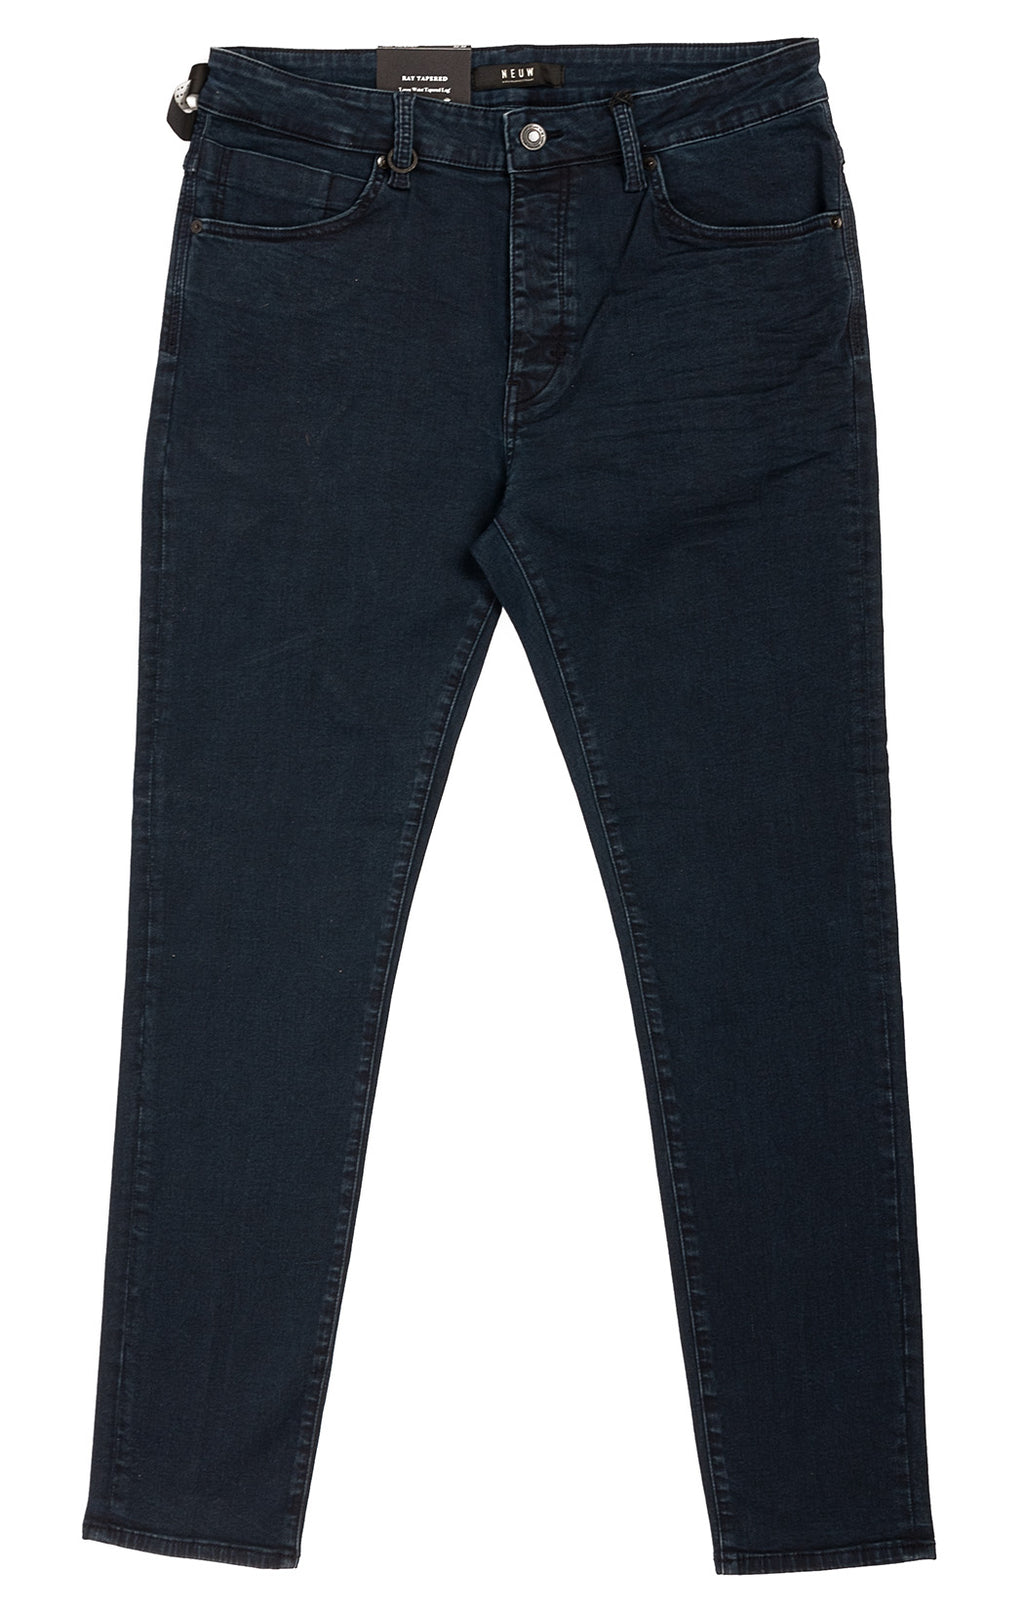 Dark denim five pocket style loose leg tapered jeans